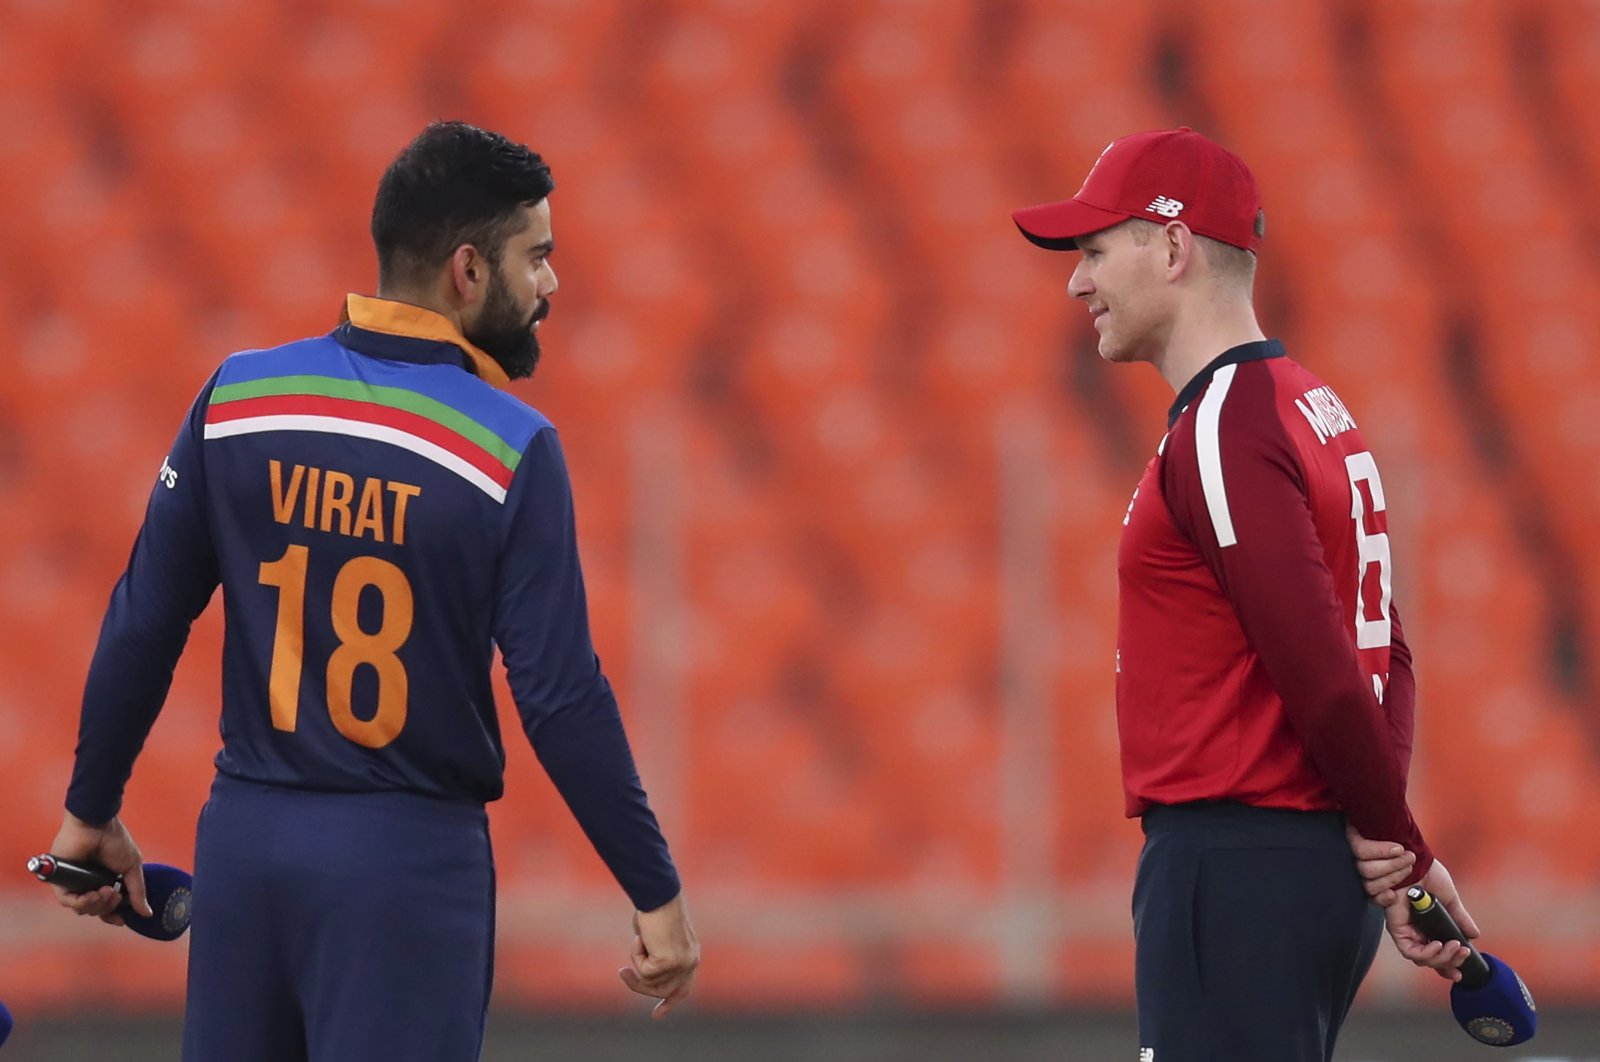 England captain Eoin Morgan (R) and India captain Virat Kohli at the toss ahead of a T20 match in Ahmedabad, India, March 20, 2021. (AP Photo)